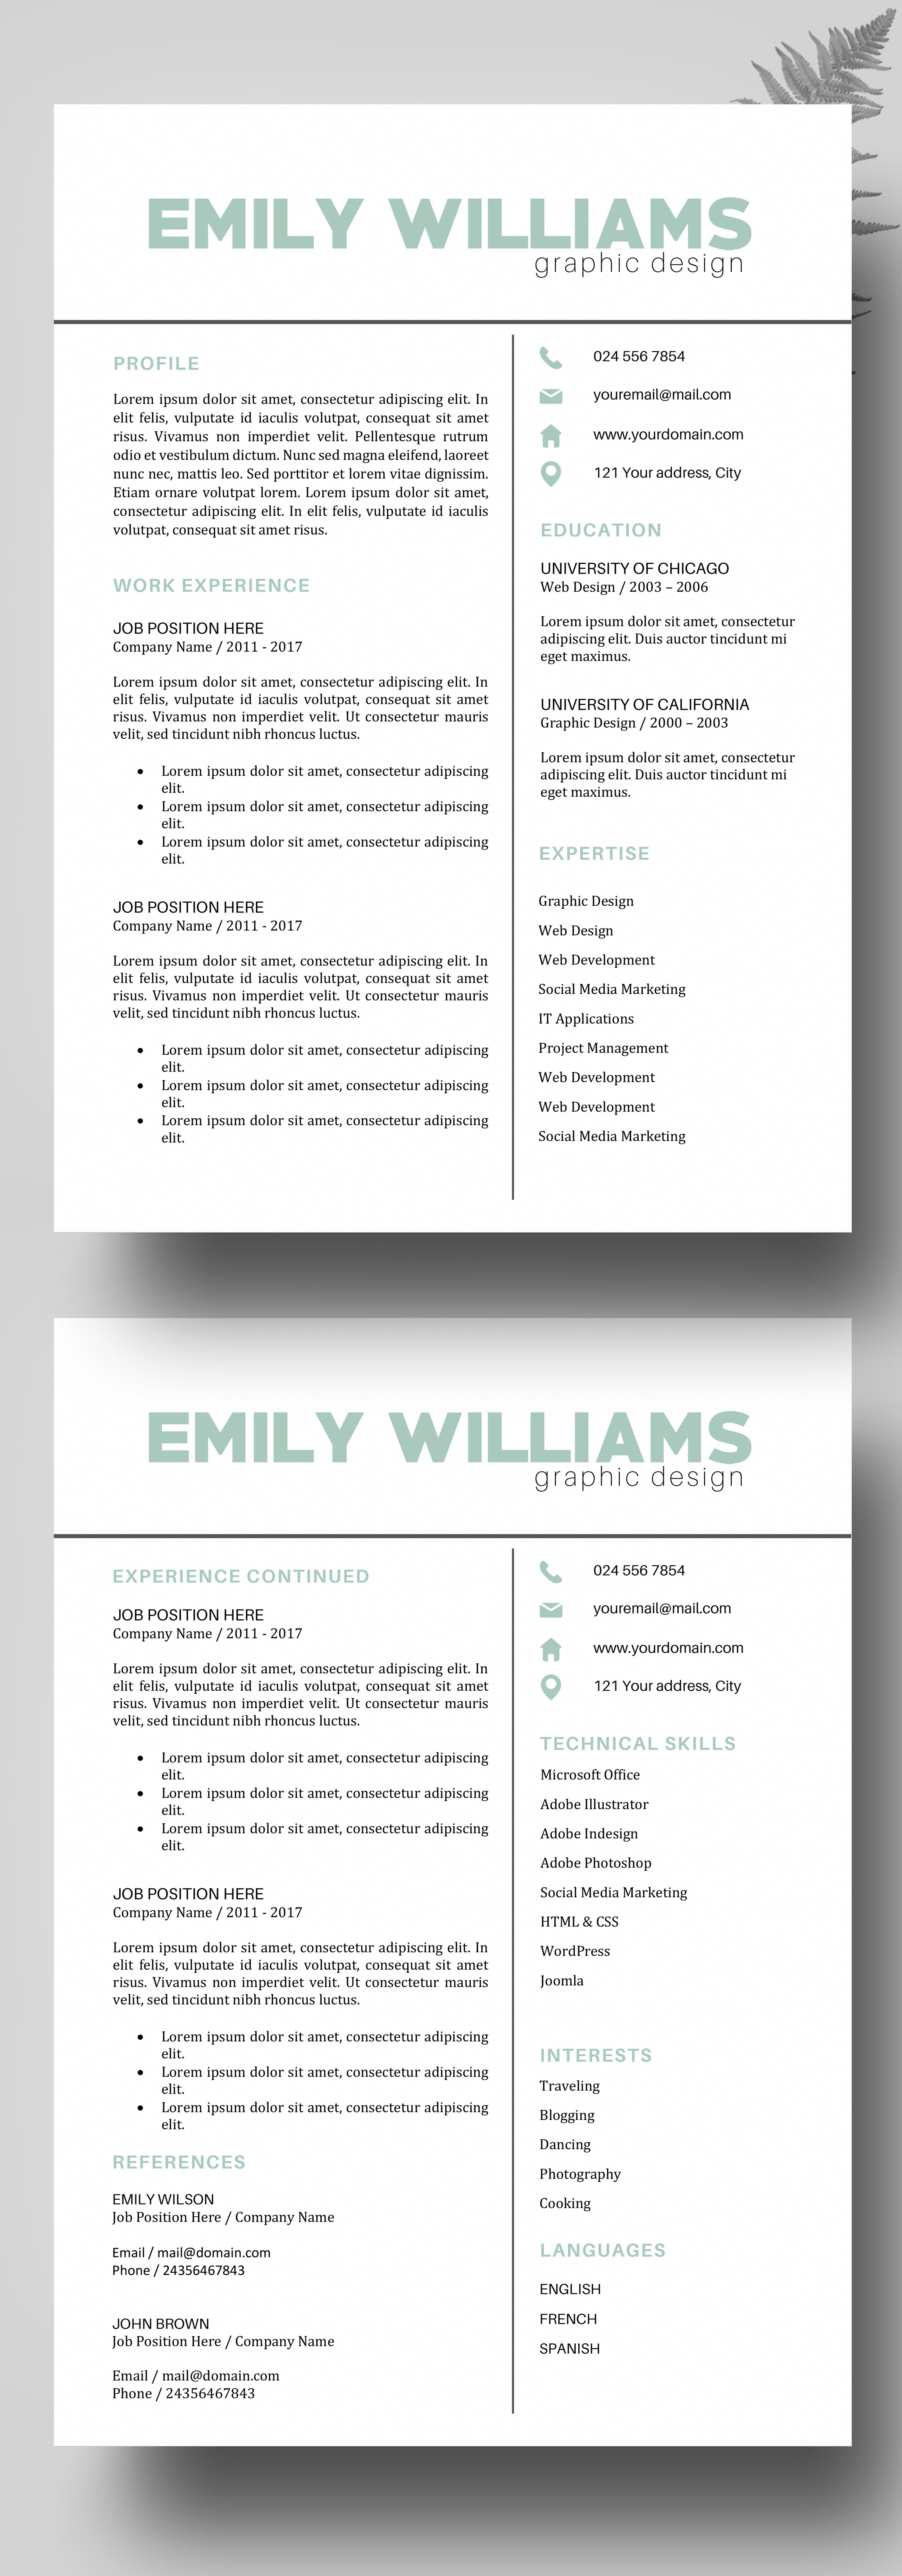 Resume Template - CV Template for MS Word - Professional Resume ...